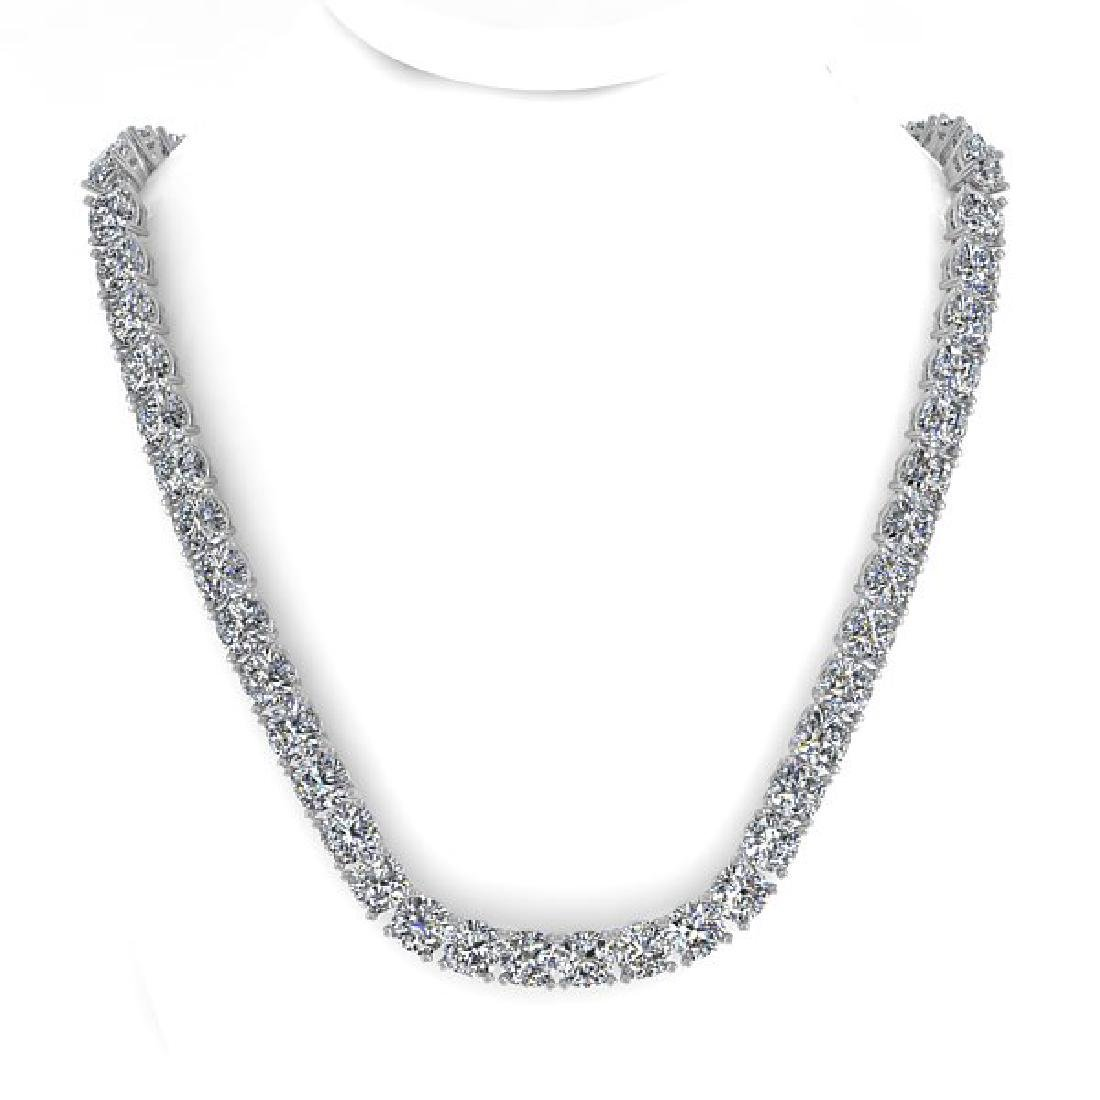 30 CTW Cushion Cut Certified SI Diamond Necklace 18K - 3